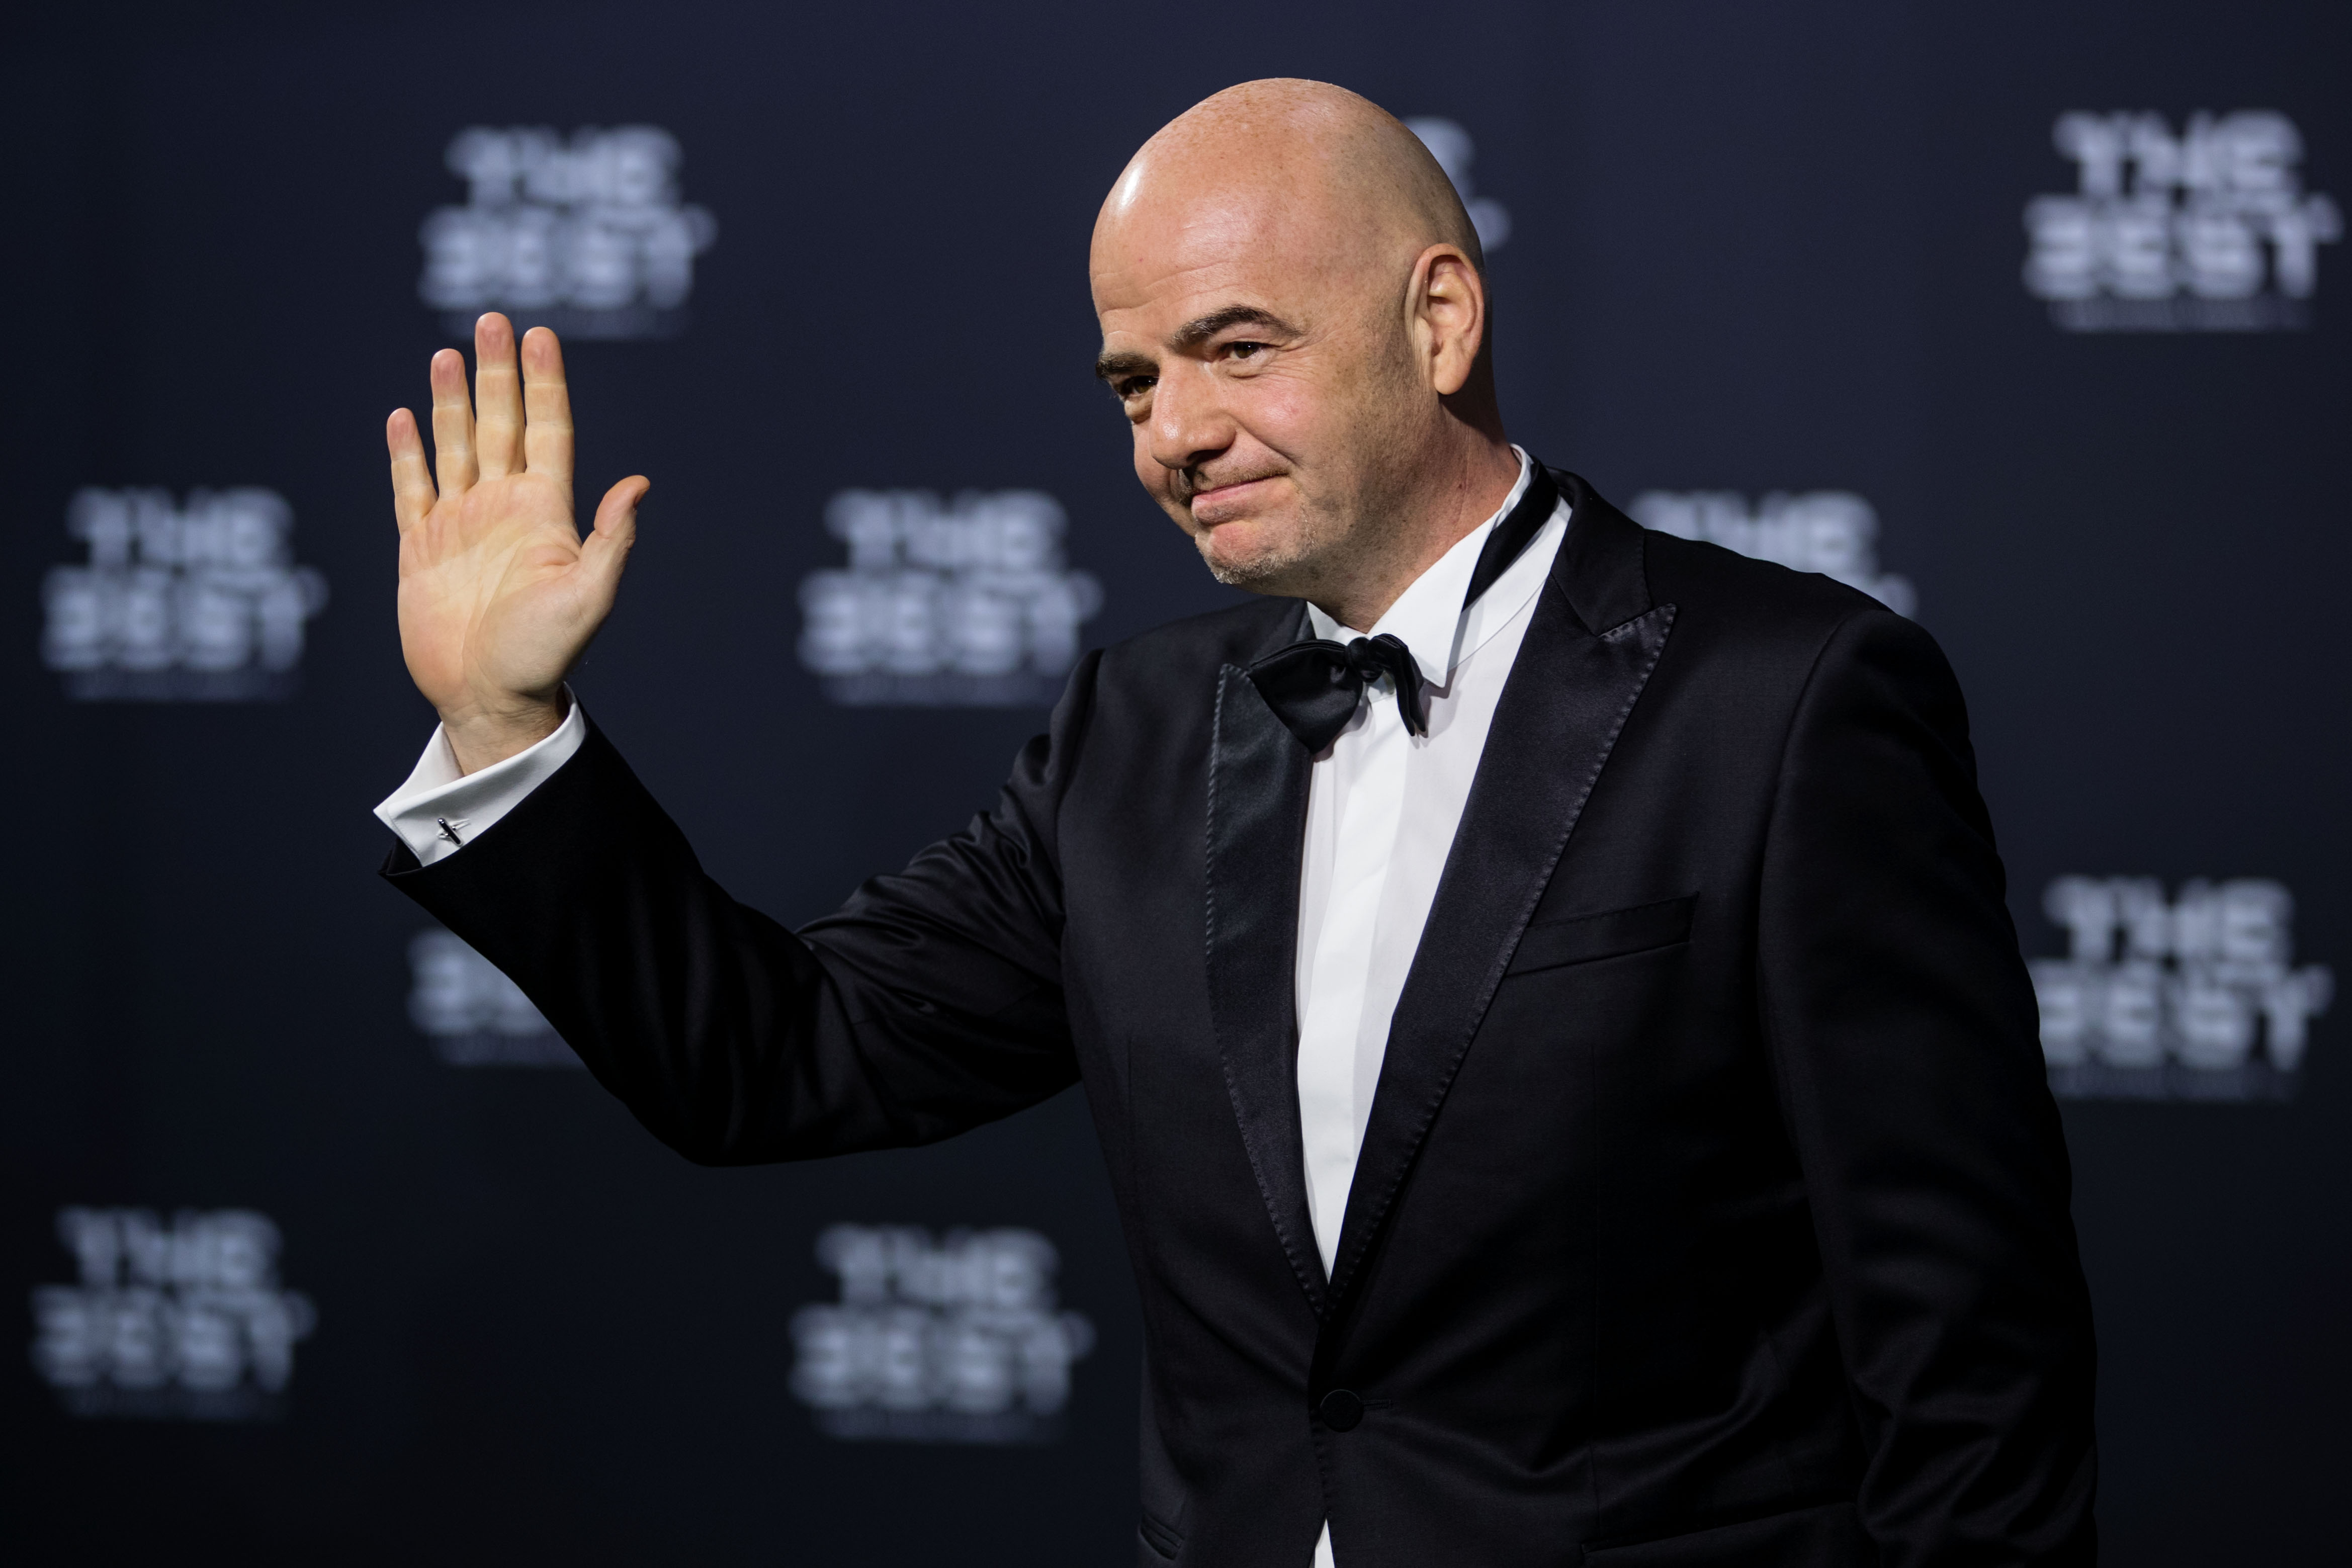 FIFA president Gianni Infantino arrives for The Best FIFA Football Awards 2016 in Zurich, Switzerland, on Jan. 9, 2017.